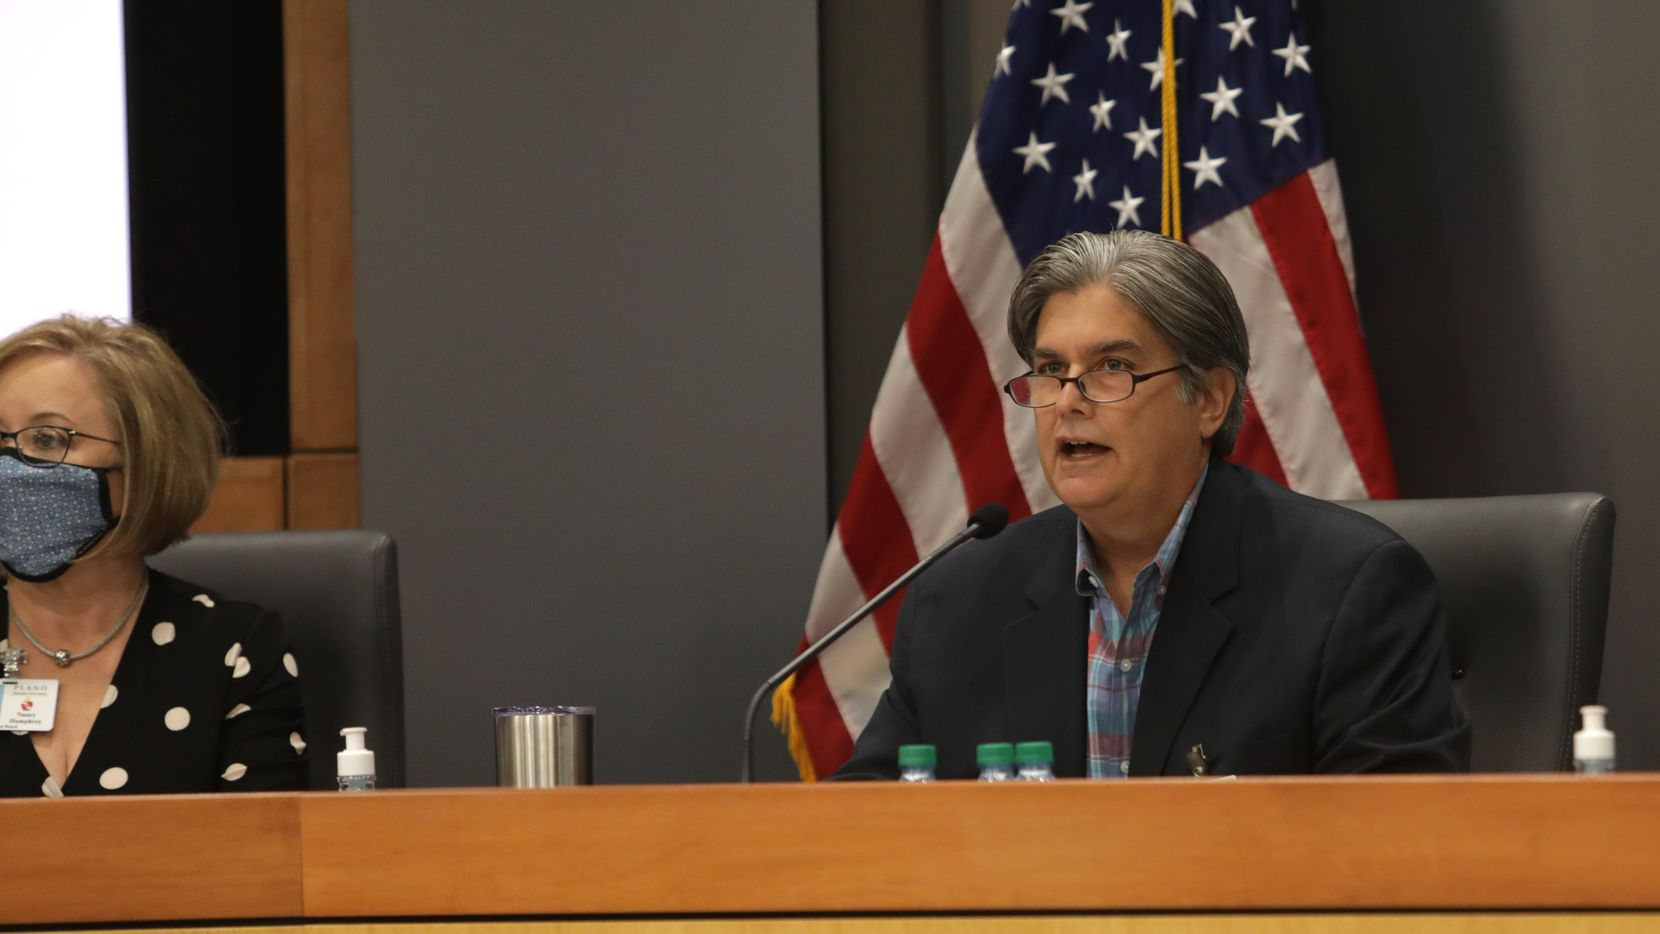 David Stolle speaks during a Plano ISD emergency meeting regarding mask mandates at the Plano District Administration Building Board Room in Plano on Aug. 23, 2021.